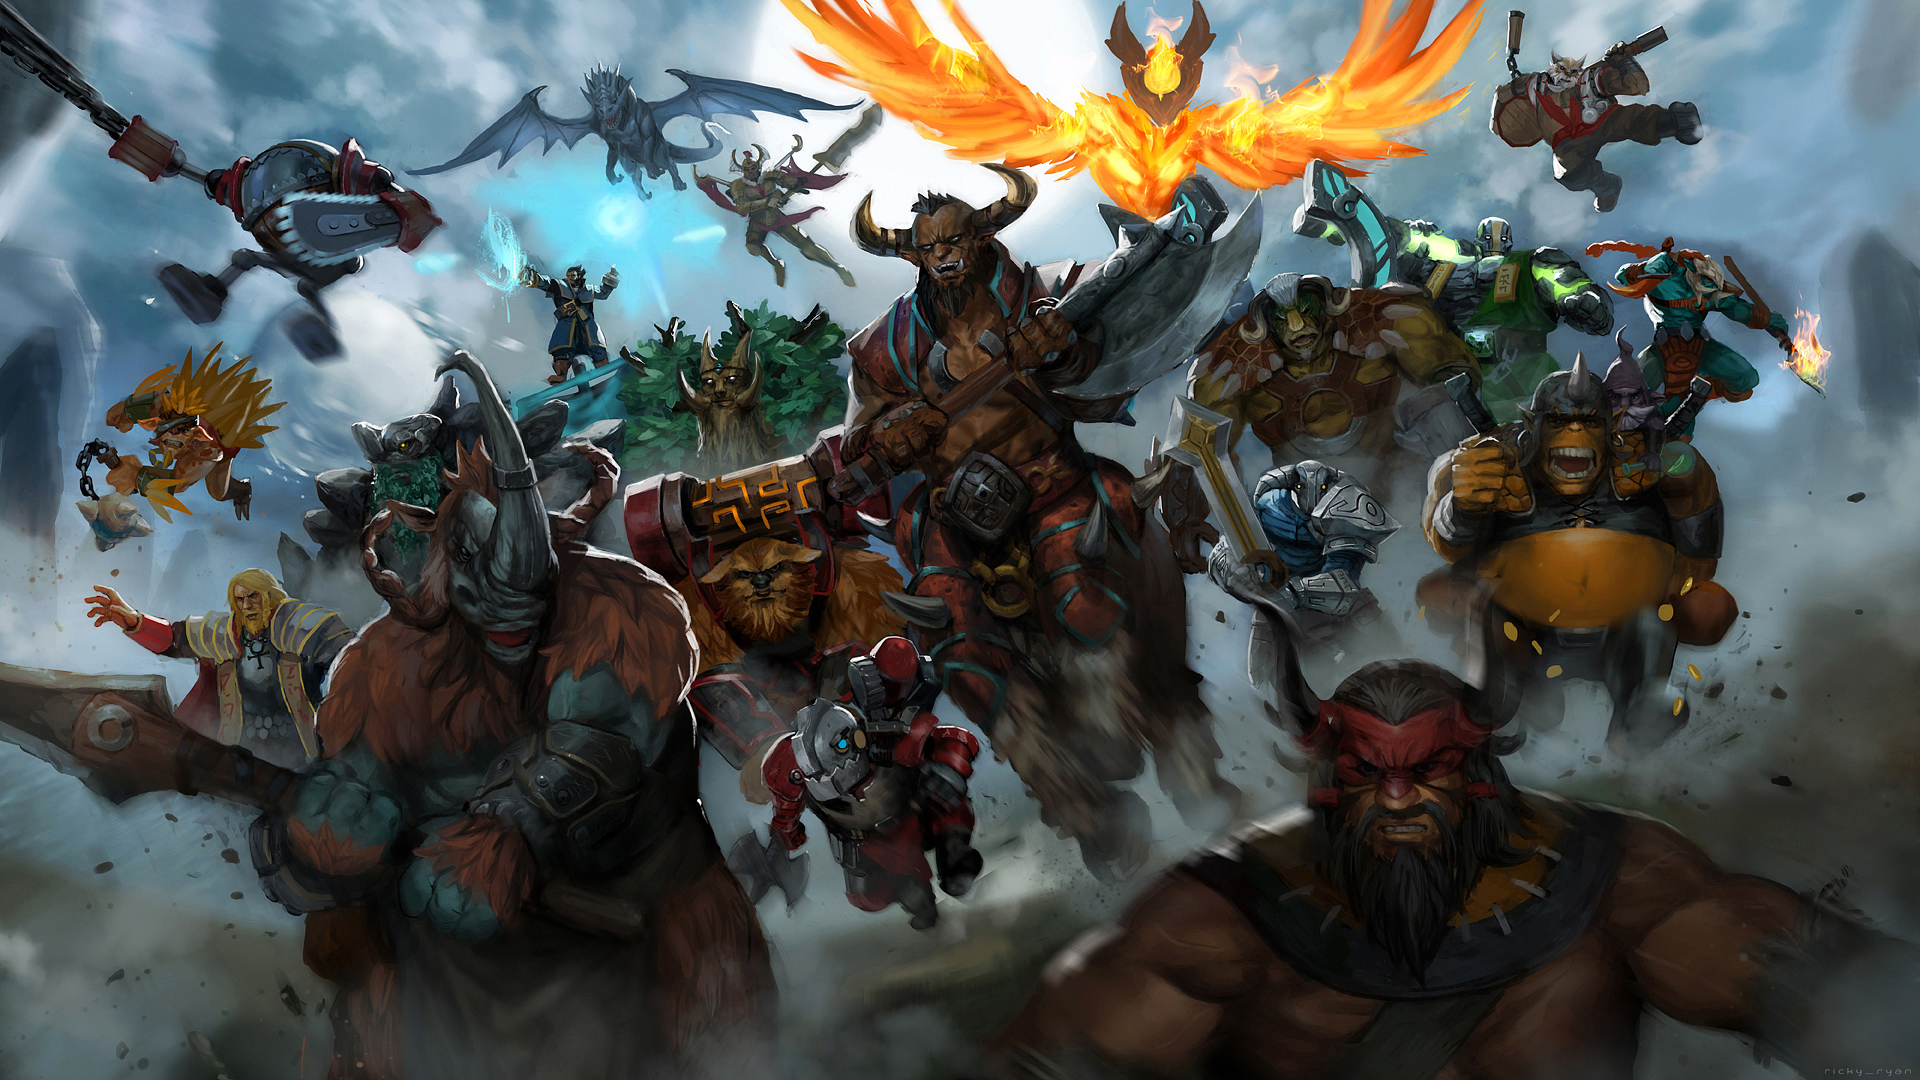 Dota 2 Epic Heroes Wallpaper HD